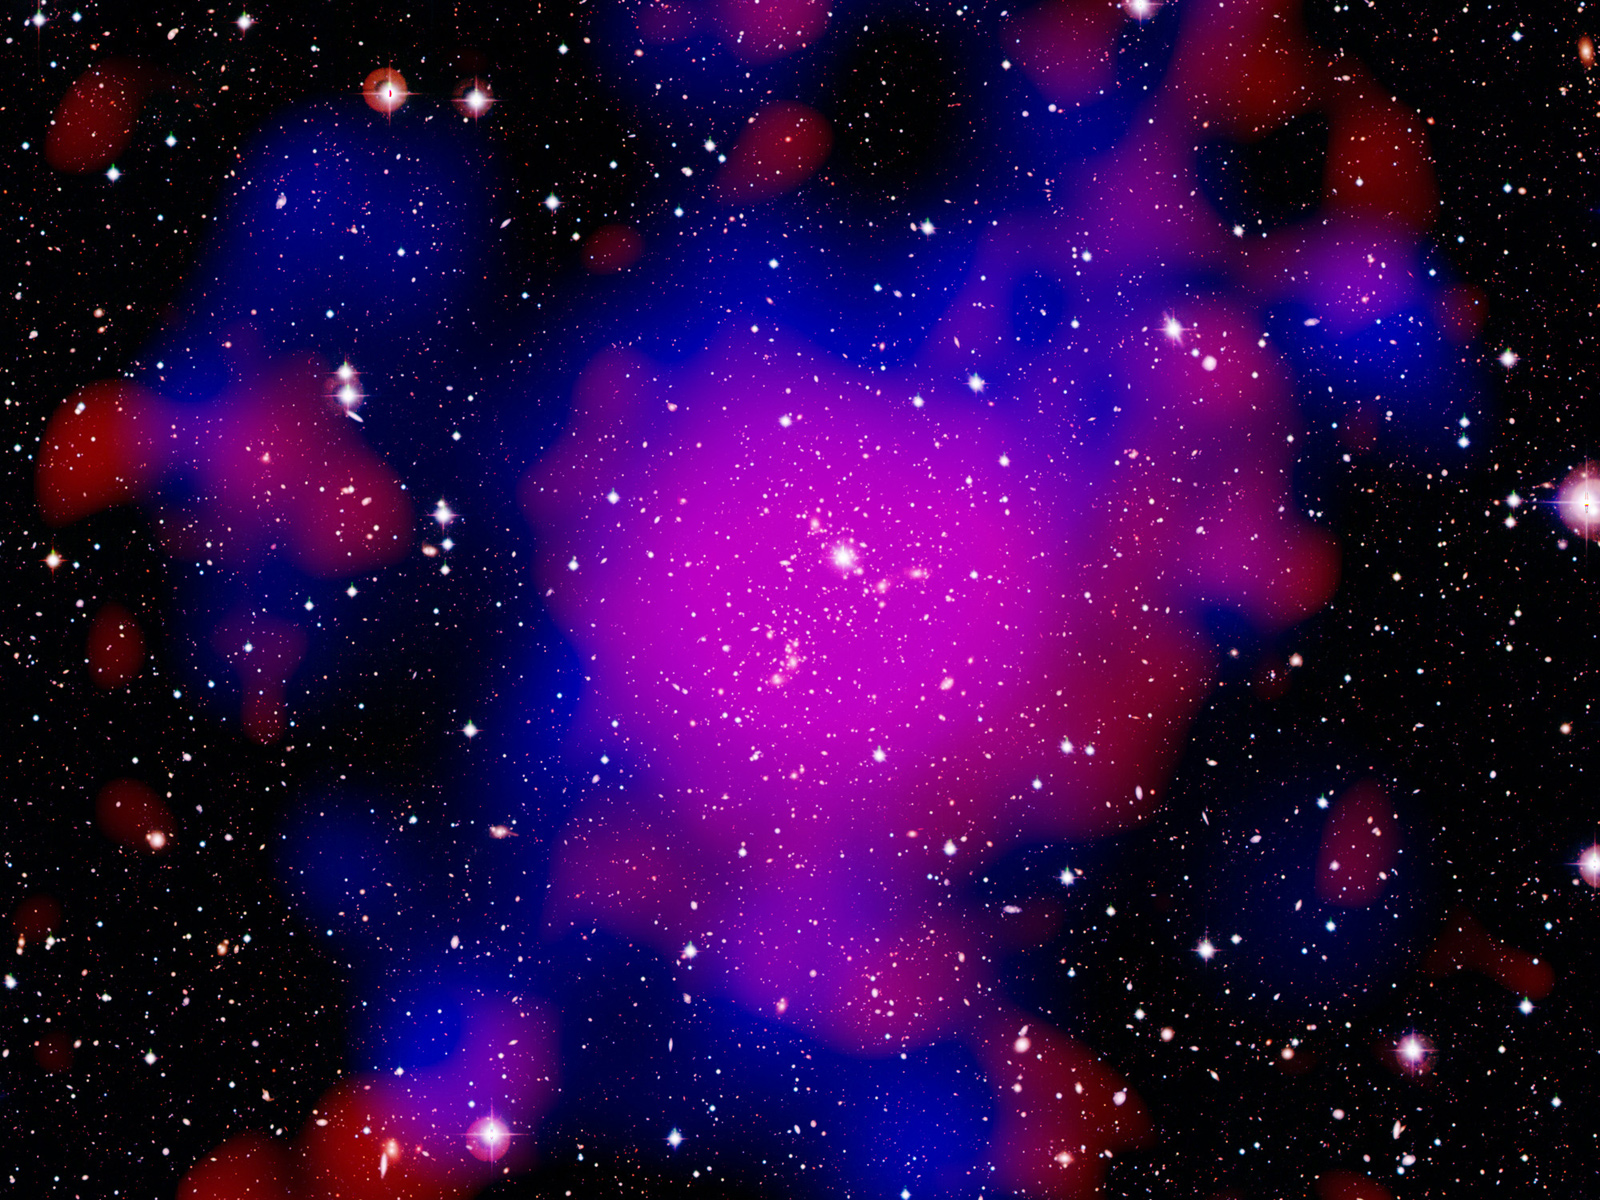 Connections in the Cosmic Web: Pandora Cluster | Space Wallpaper